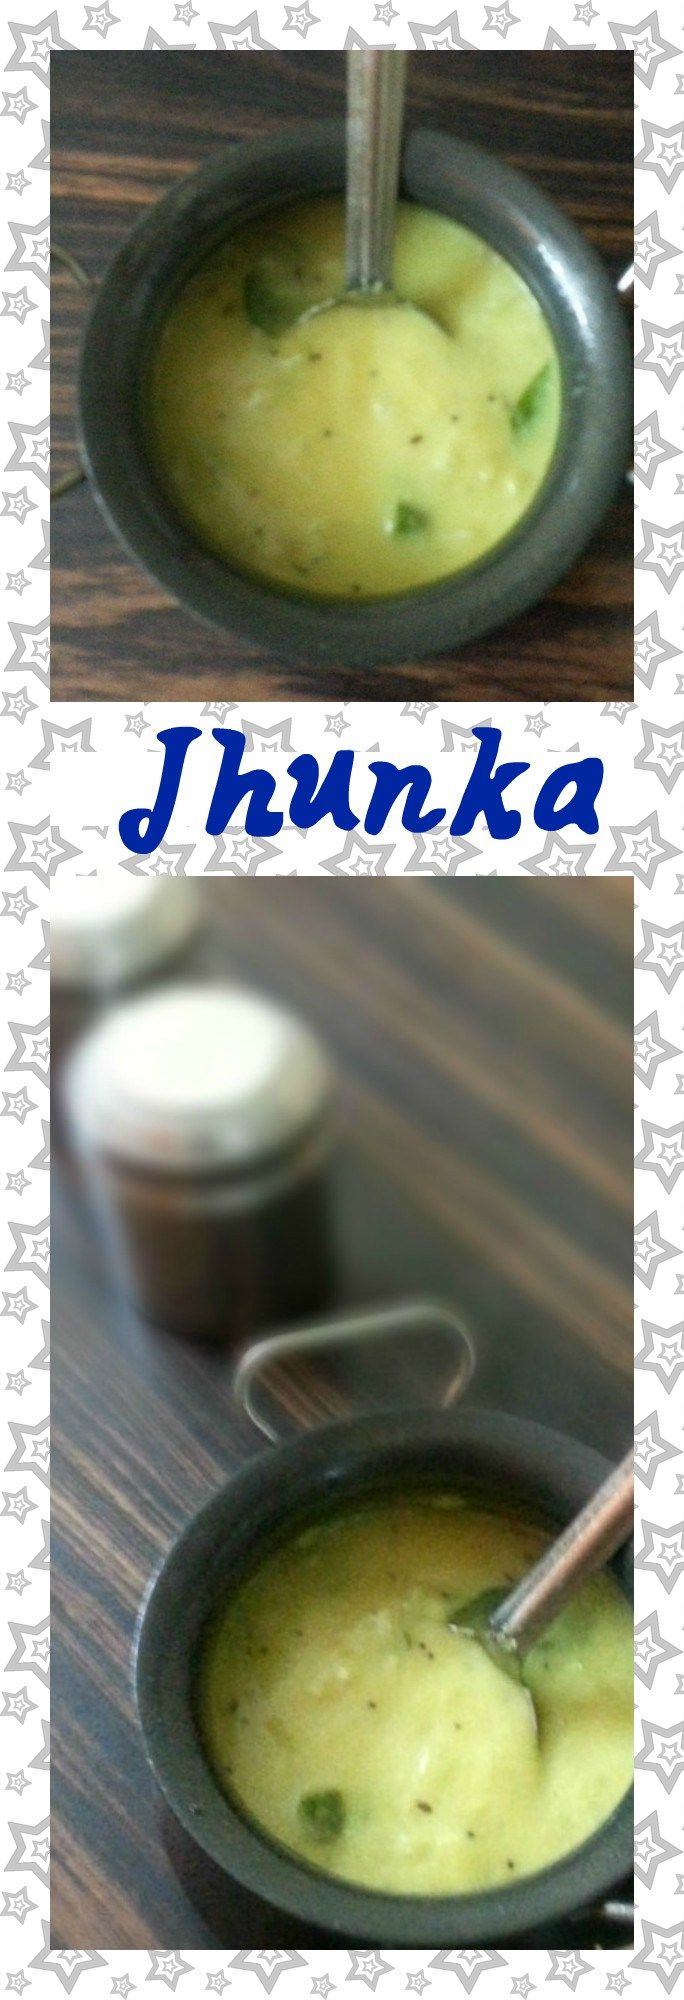 Jhunka- A simple and easy to prepare gram flour based gravy side dish for chapathi